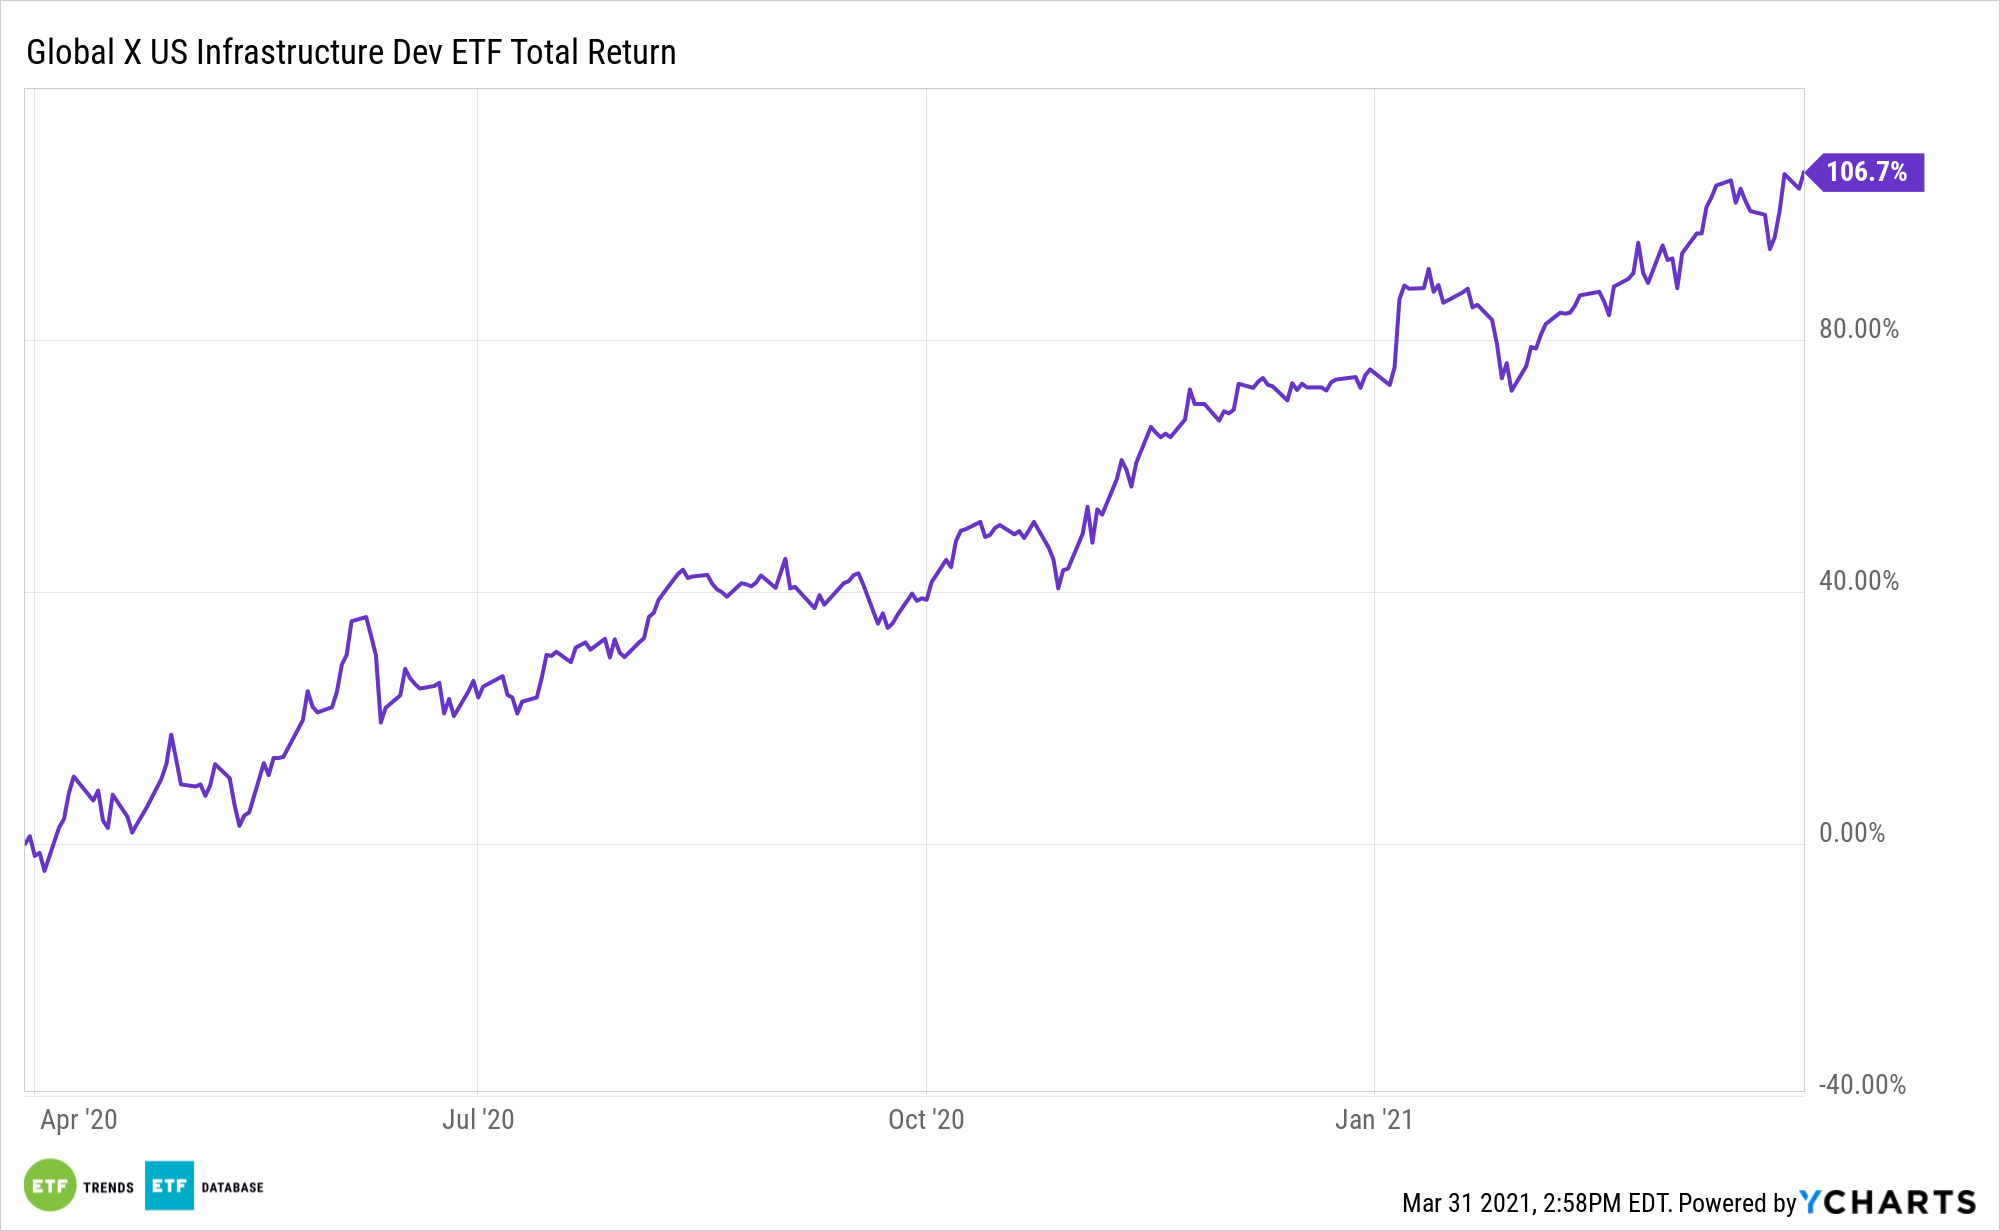 PAVE 1 Year Total Return